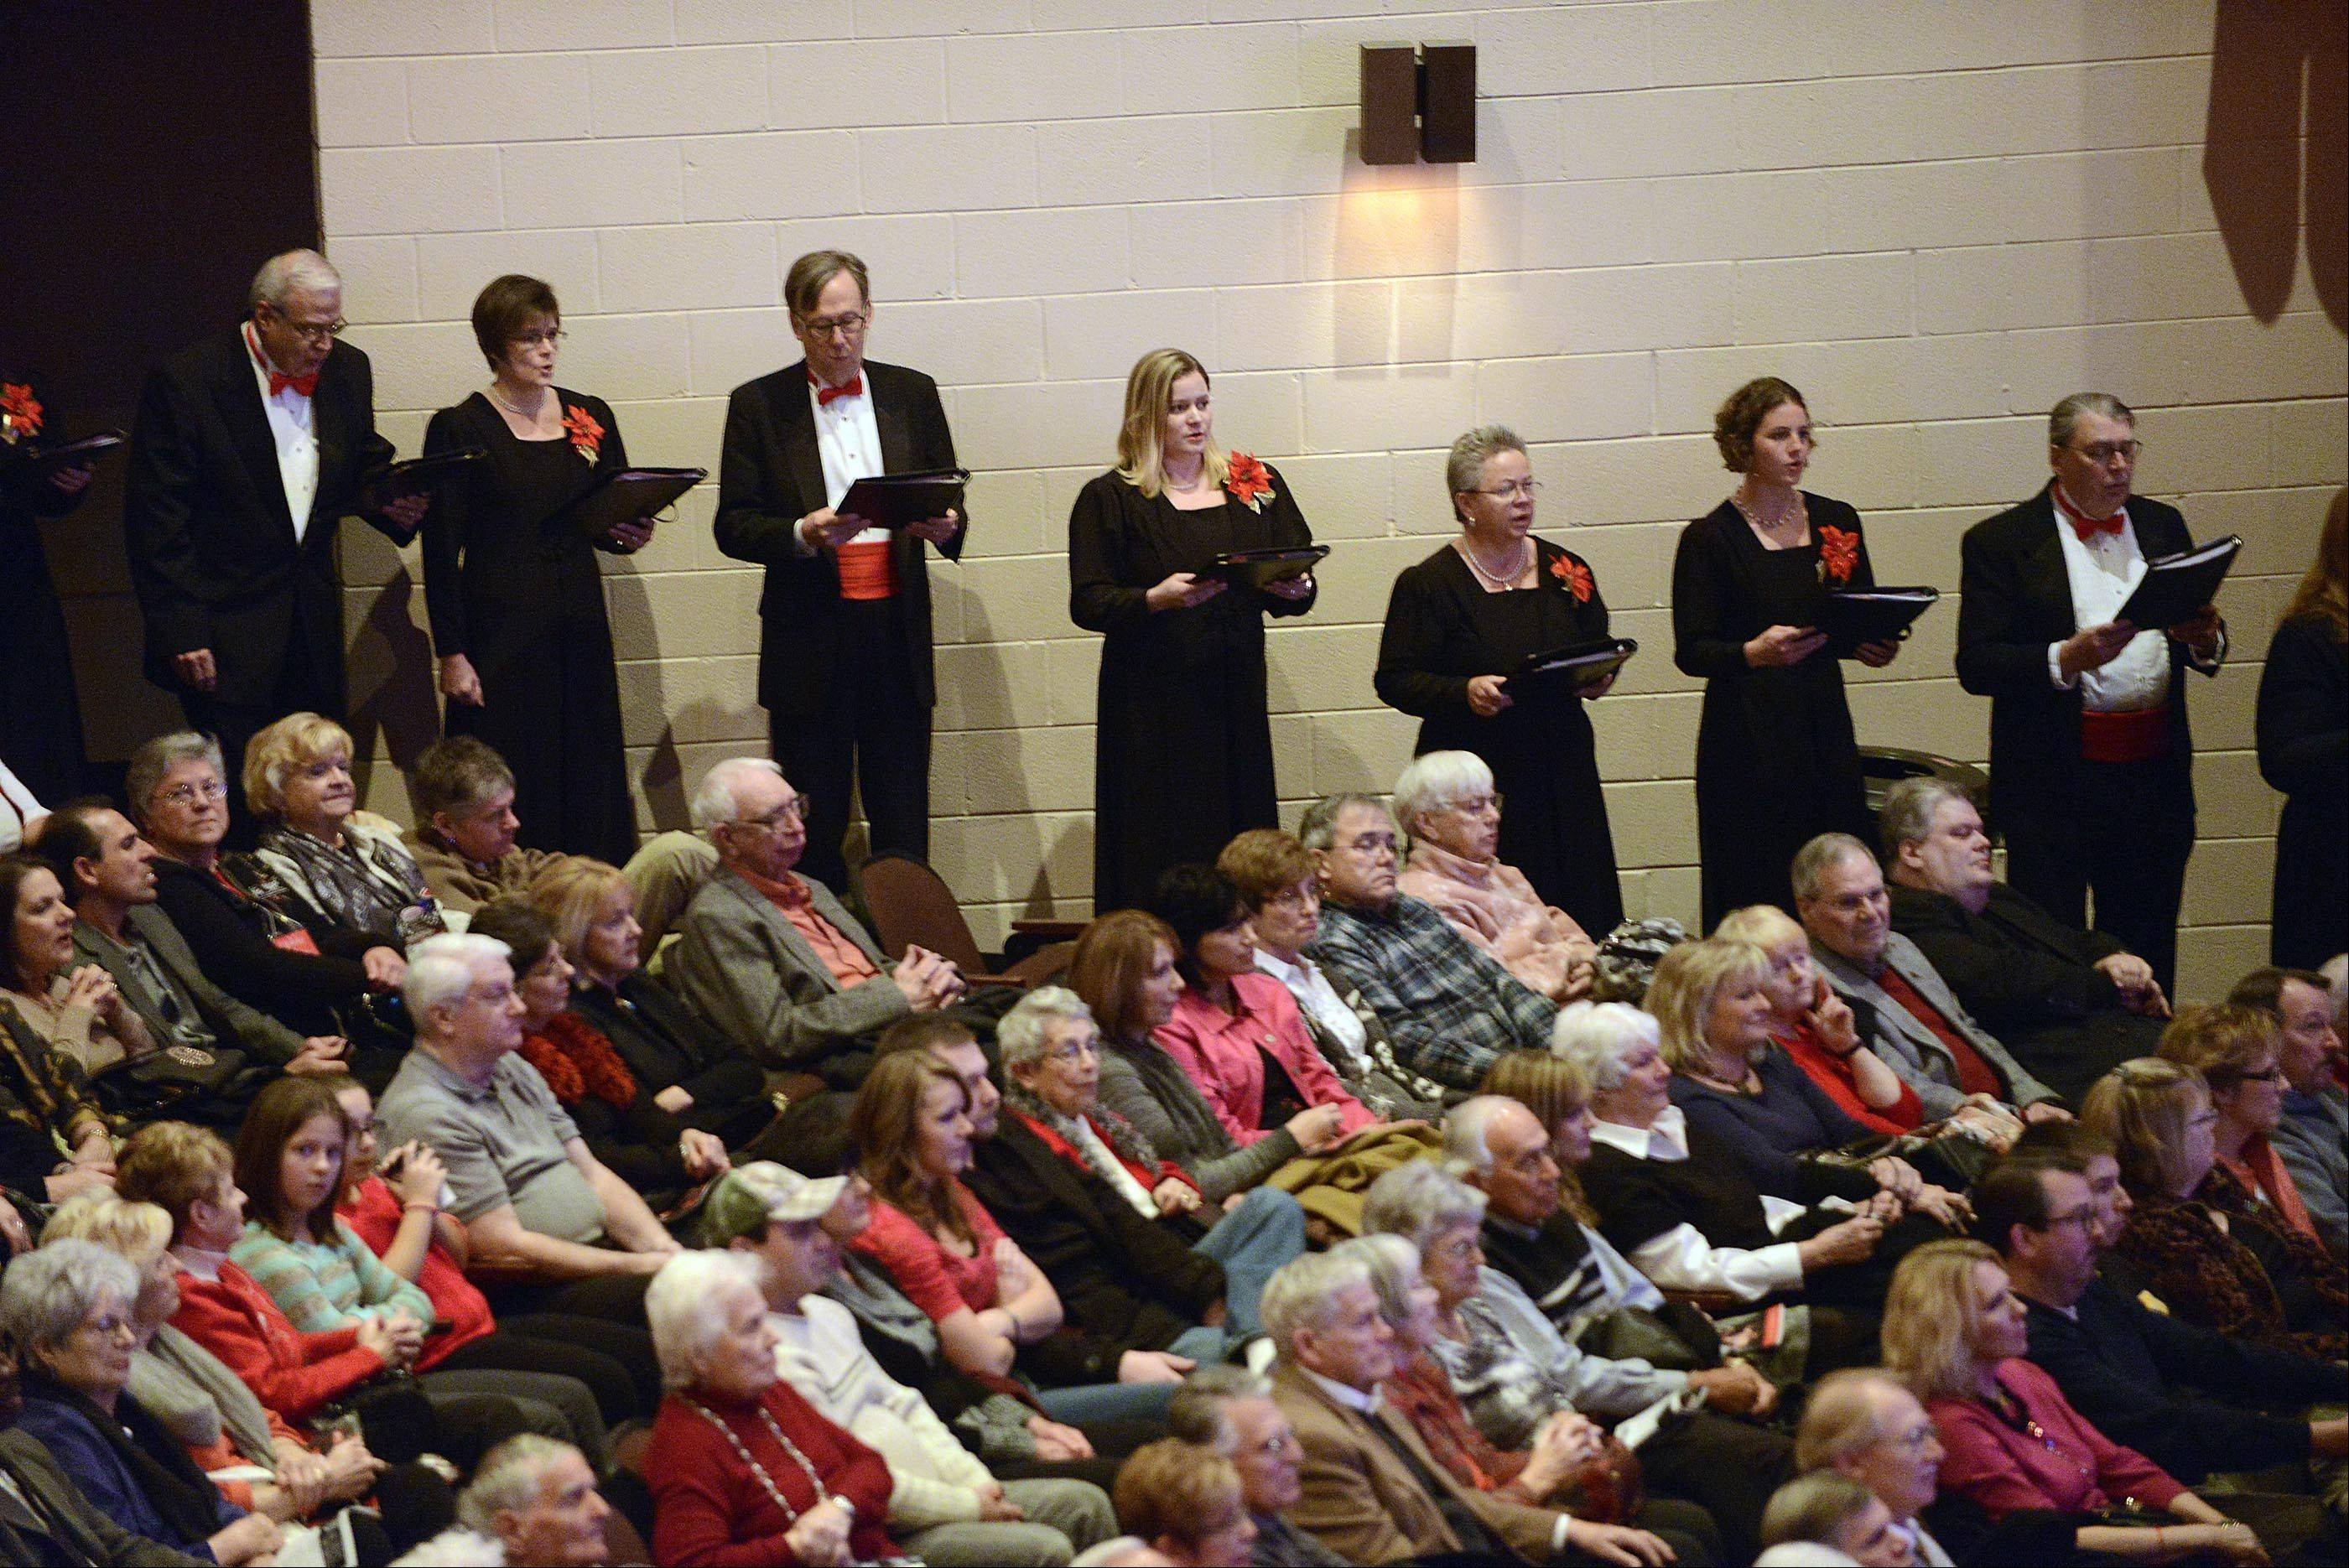 The Elgin Choral Union surrounded the audience Sunday at the start of the Elgin Symphony Orchestra's Magical Holiday Concert at the Hemmens Cultural Center in Elgin. The concert also featured the Elgin Children's Chorus, Midwest Dance Collective and soprano Elizabeth Norman.